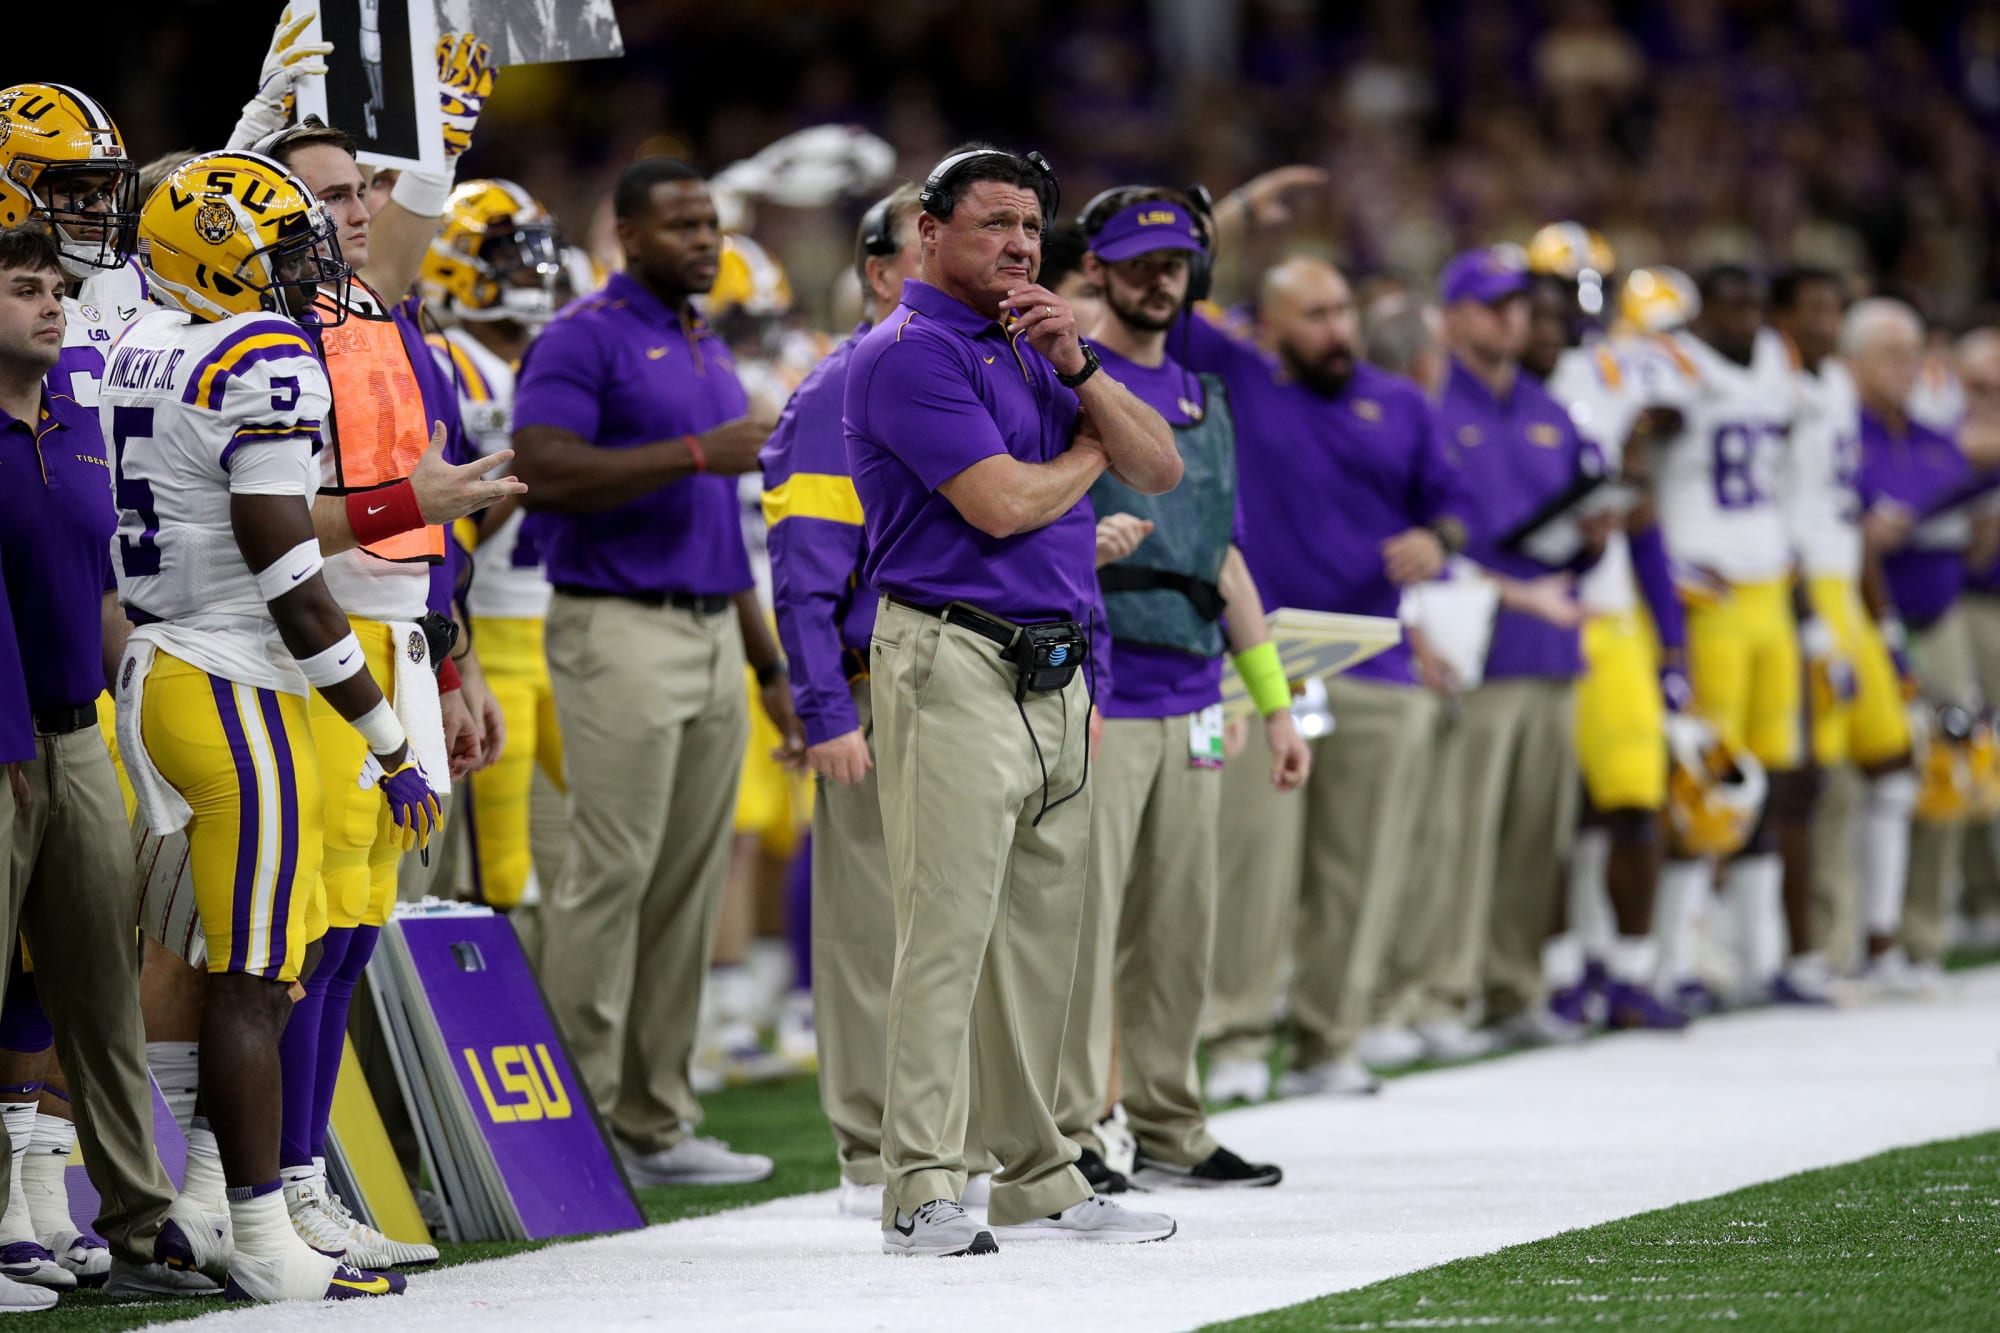 LSU Football: Another DC option from NFL emerges